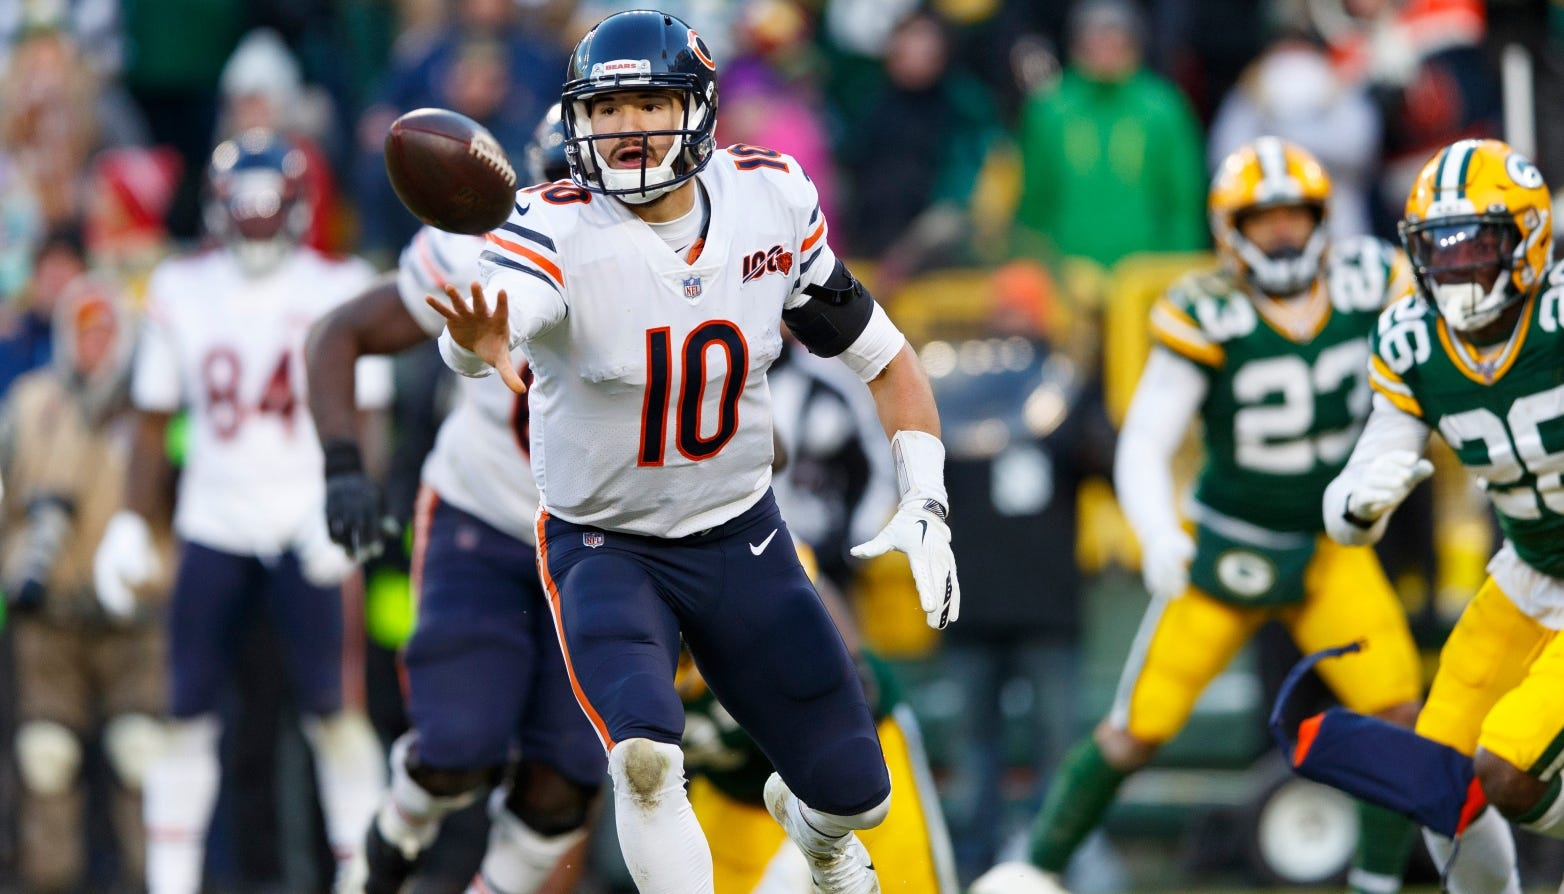 Bears' Lateral-Filled Last Play Comes Up Just Short